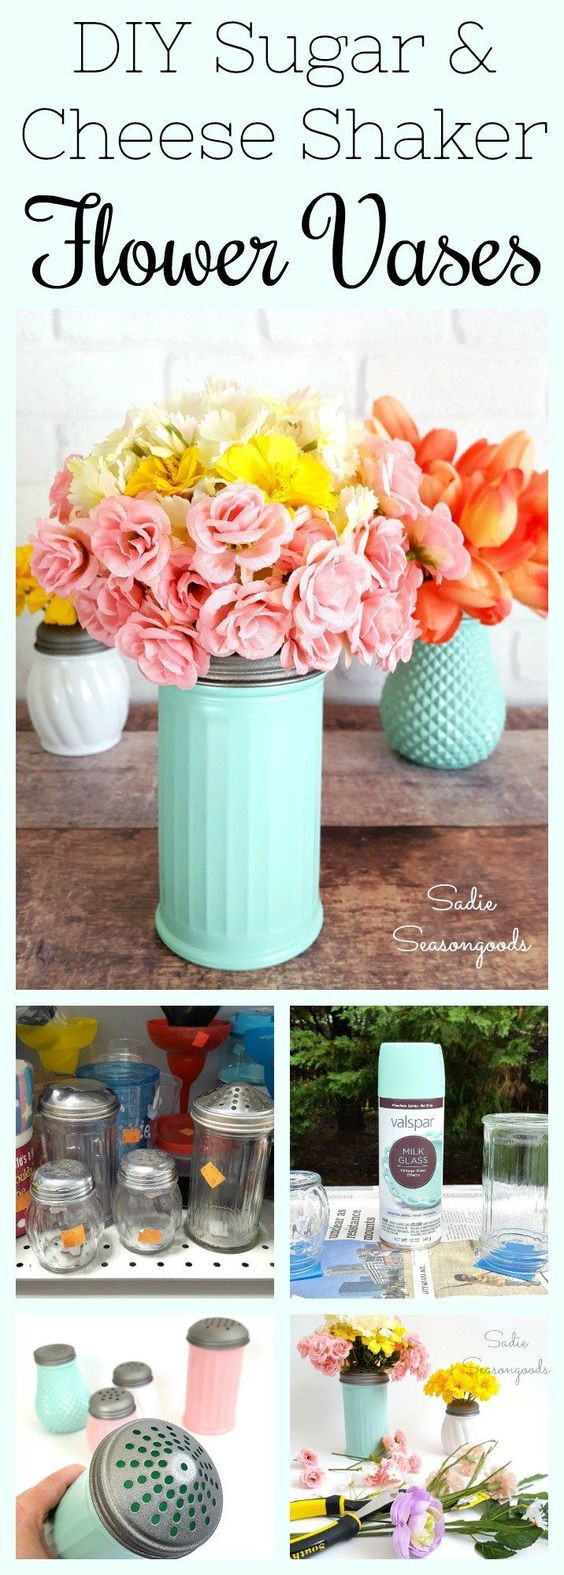 dollar tree floral vases of get creative with these 26 dollar store crafts to make something regarding you can find sugar shakers or parmesan cheese shakers at your dollar store or thrift store they can usually be purchased for very little money